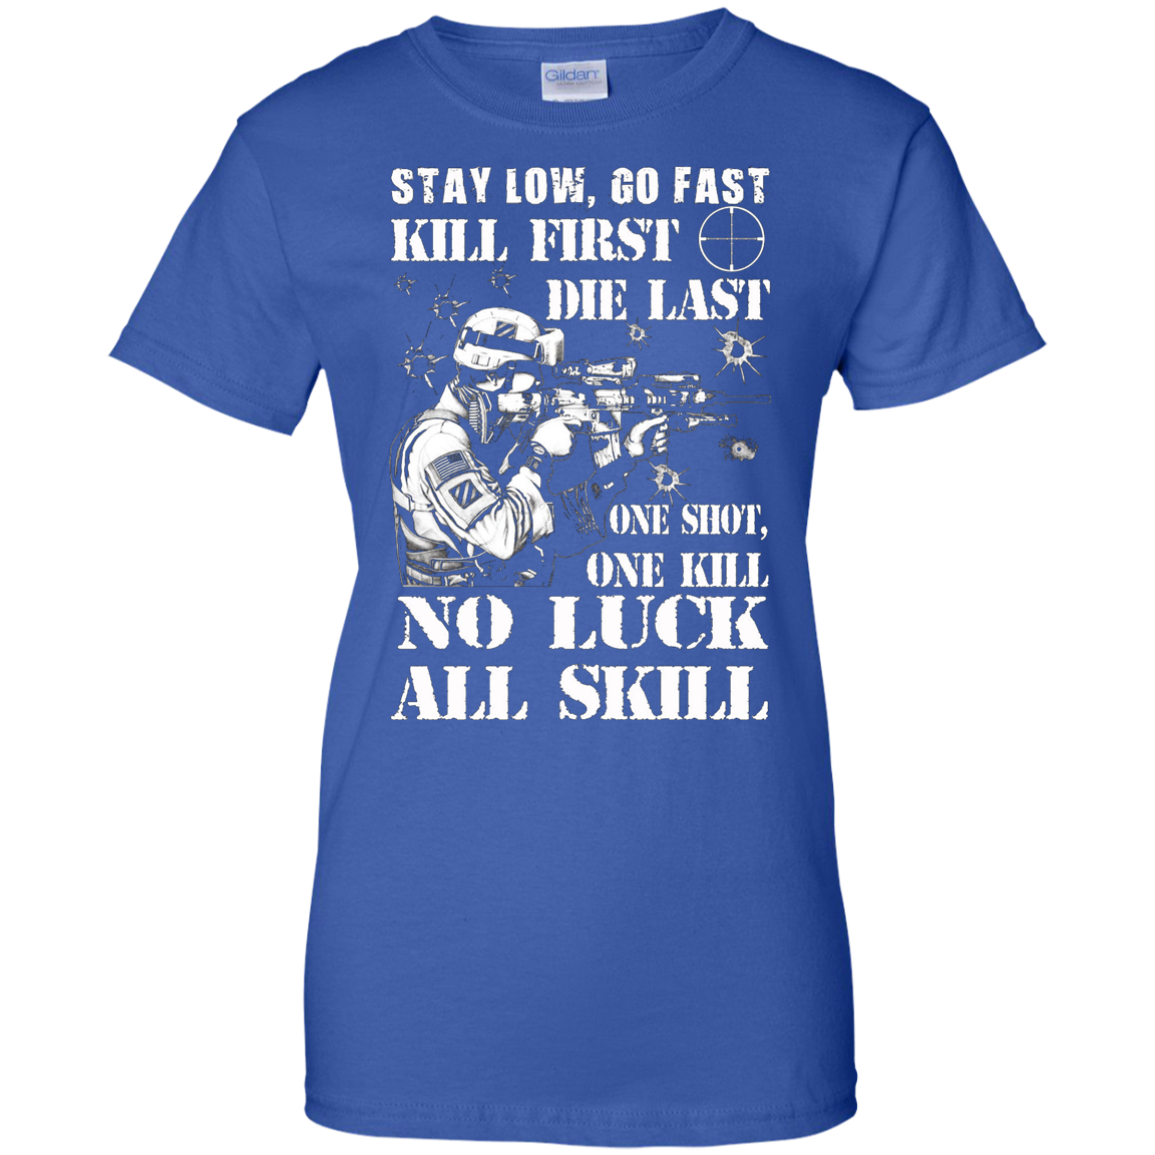 Infantry T-shirt , stay low, go fast kill first die last one